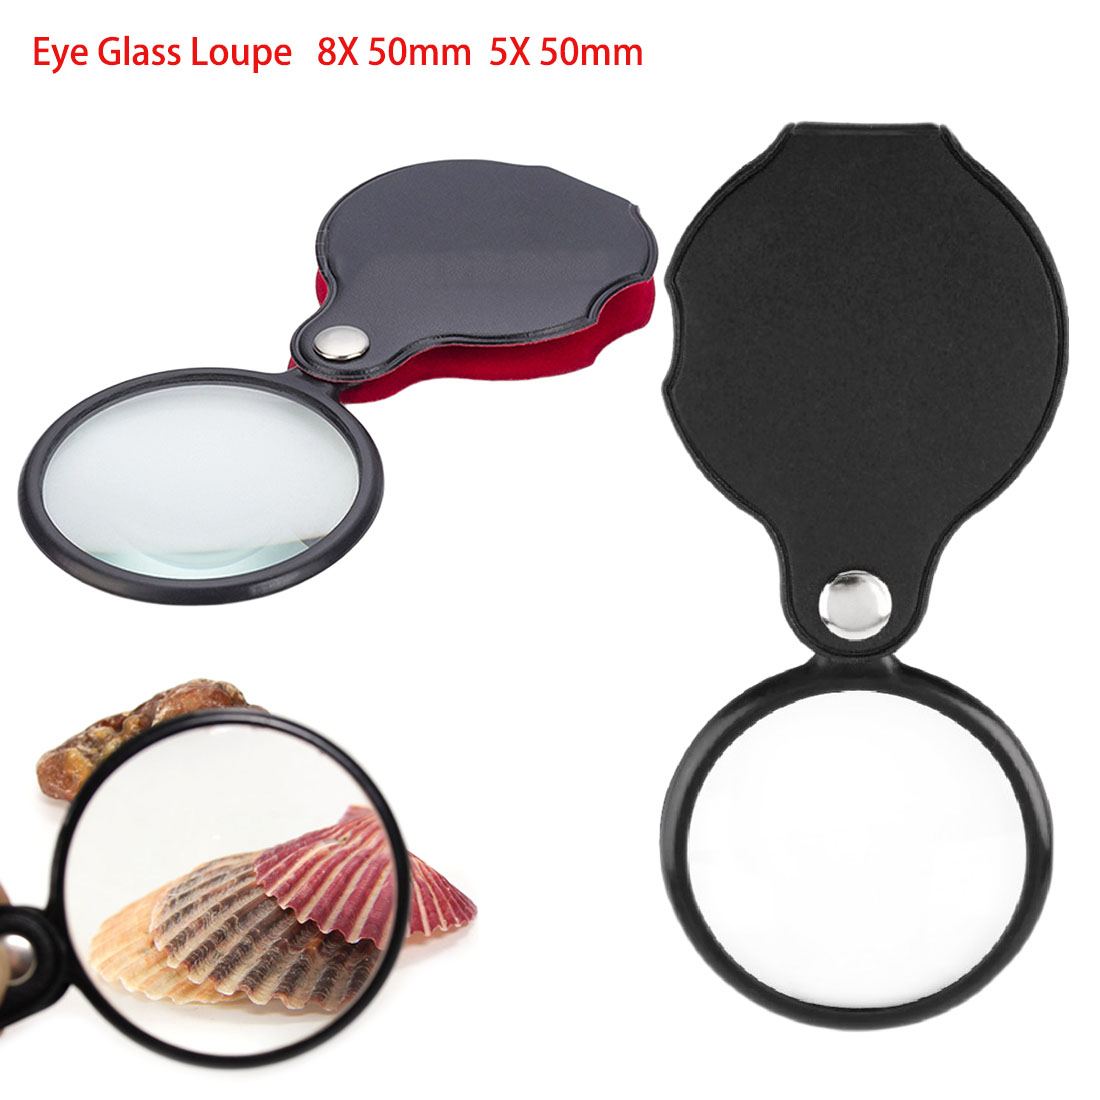 5X Magnifying Glass LED Illuminated Folding Pocket Magnifier Glass with Keychain by Wesleys as you wish